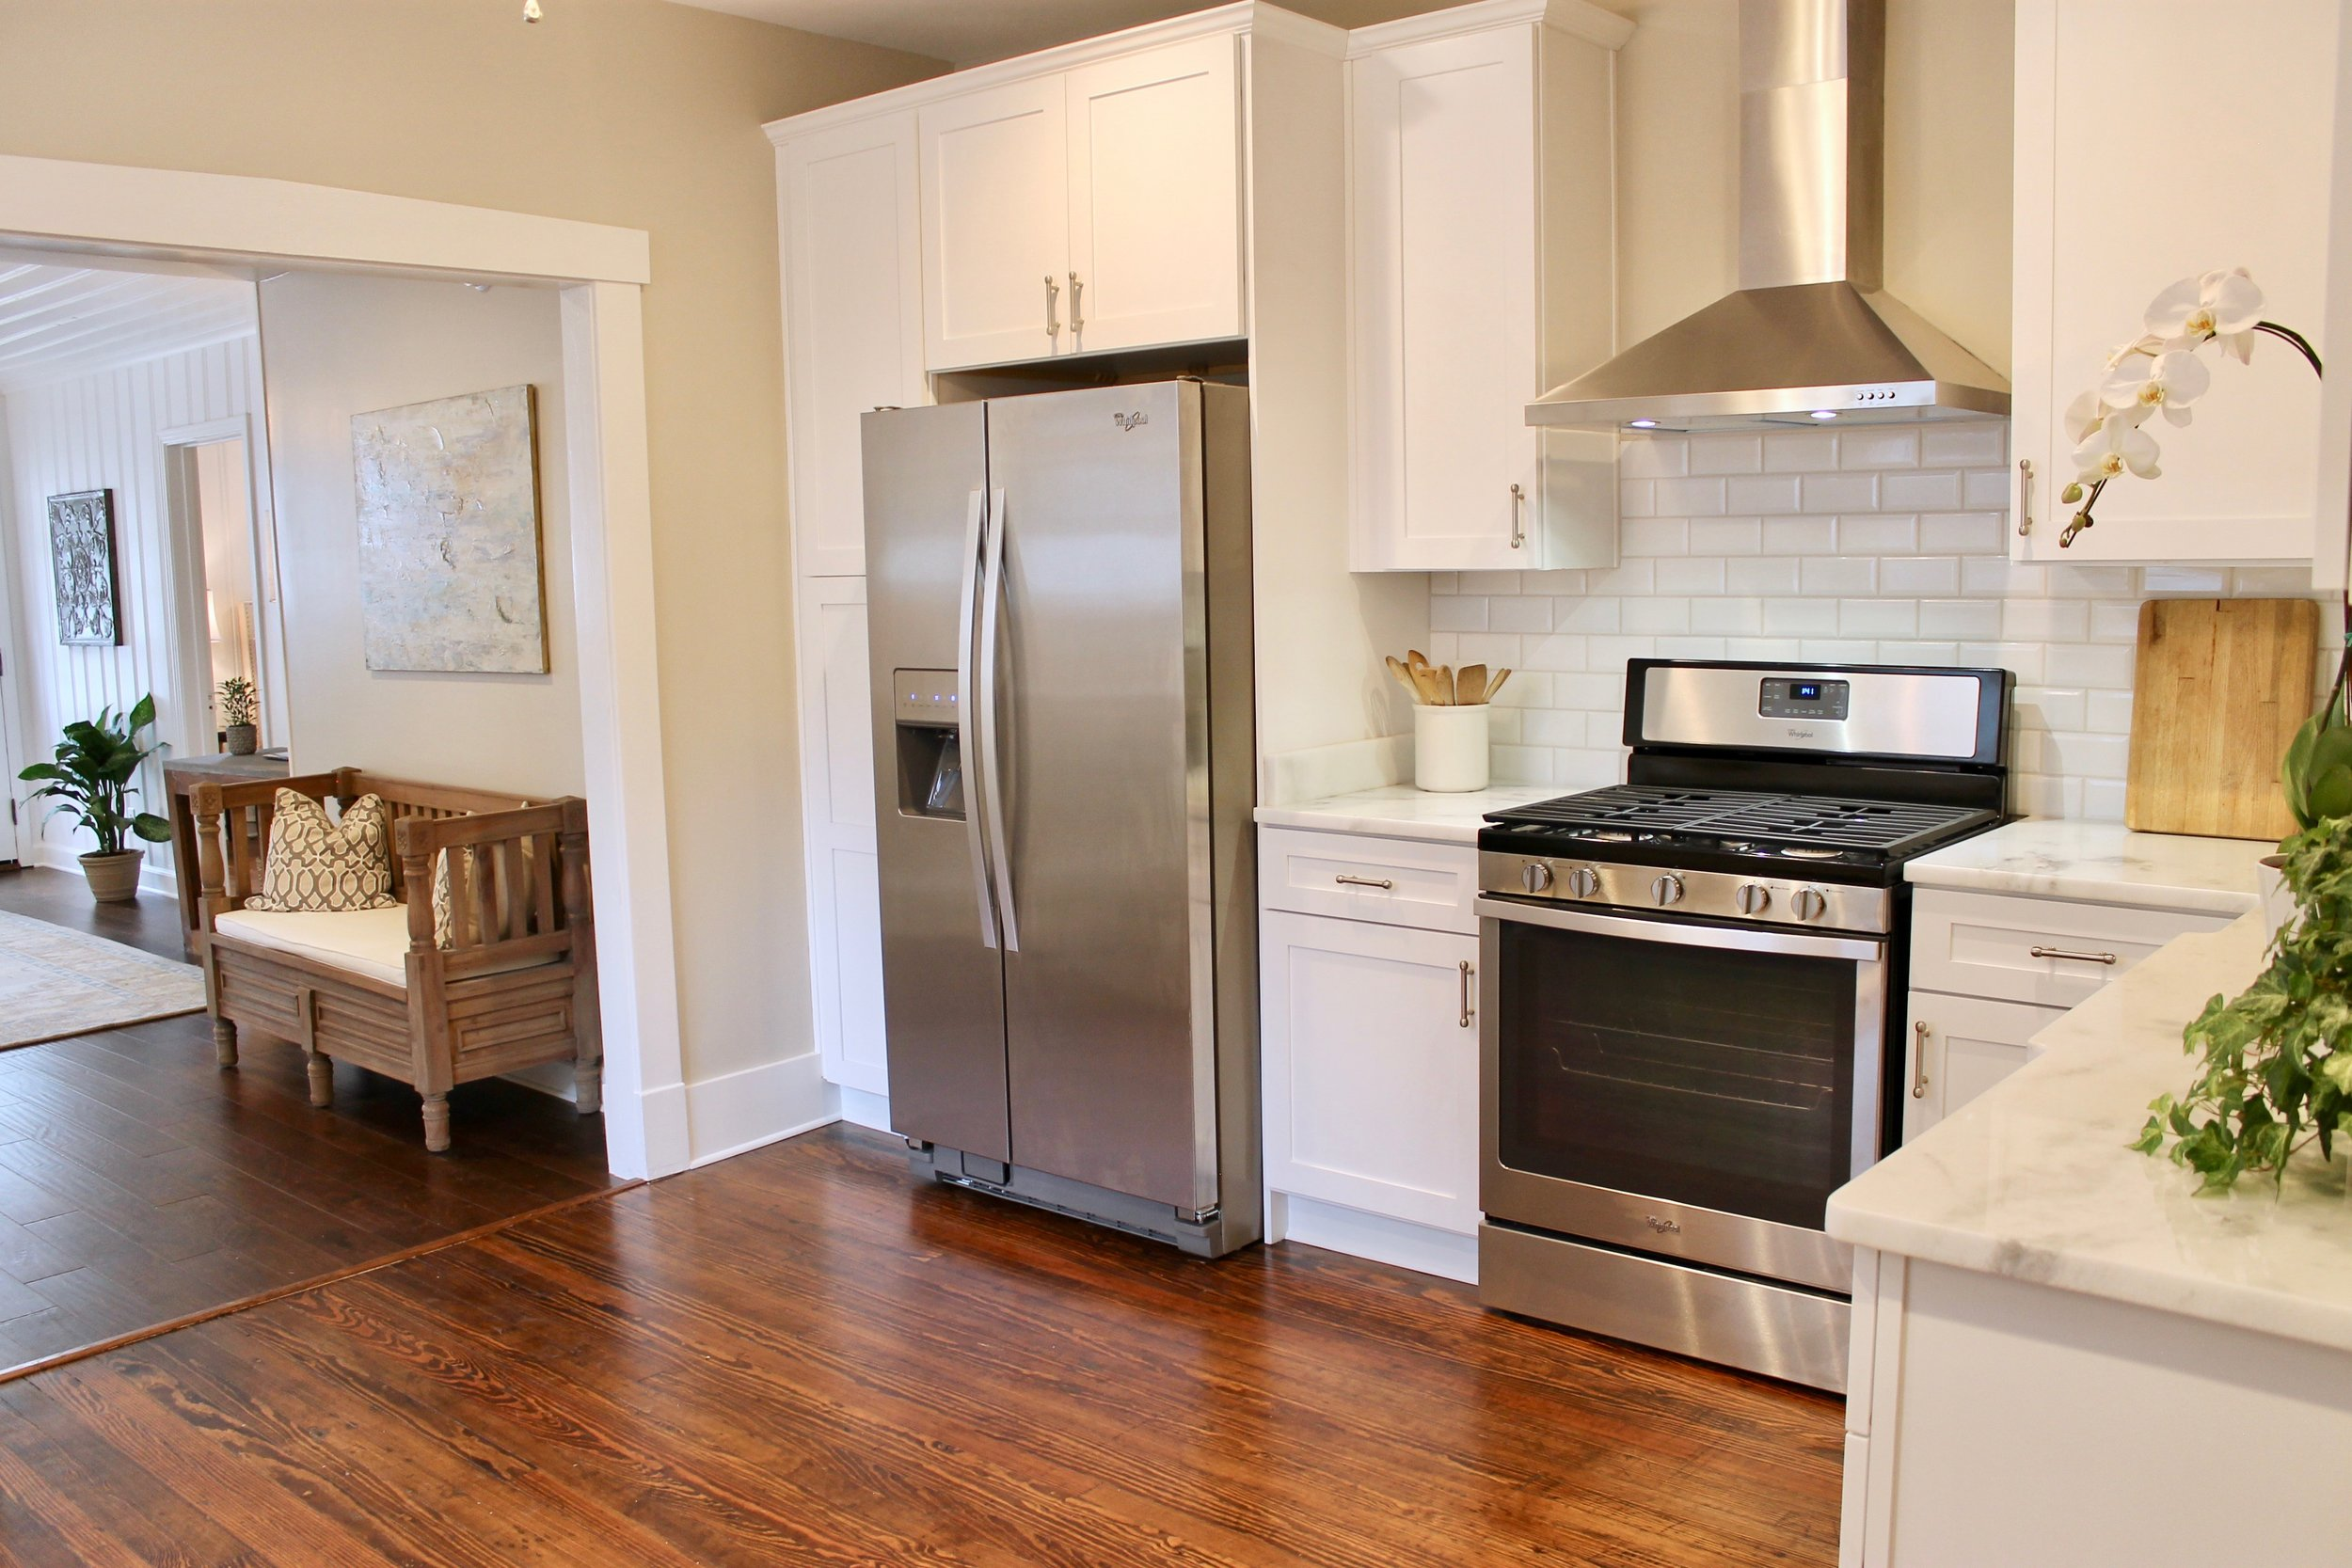 Prime Design Memphis, LLC - White kitchen, beveled subway tiles, shaker cabinets, hardwood floors